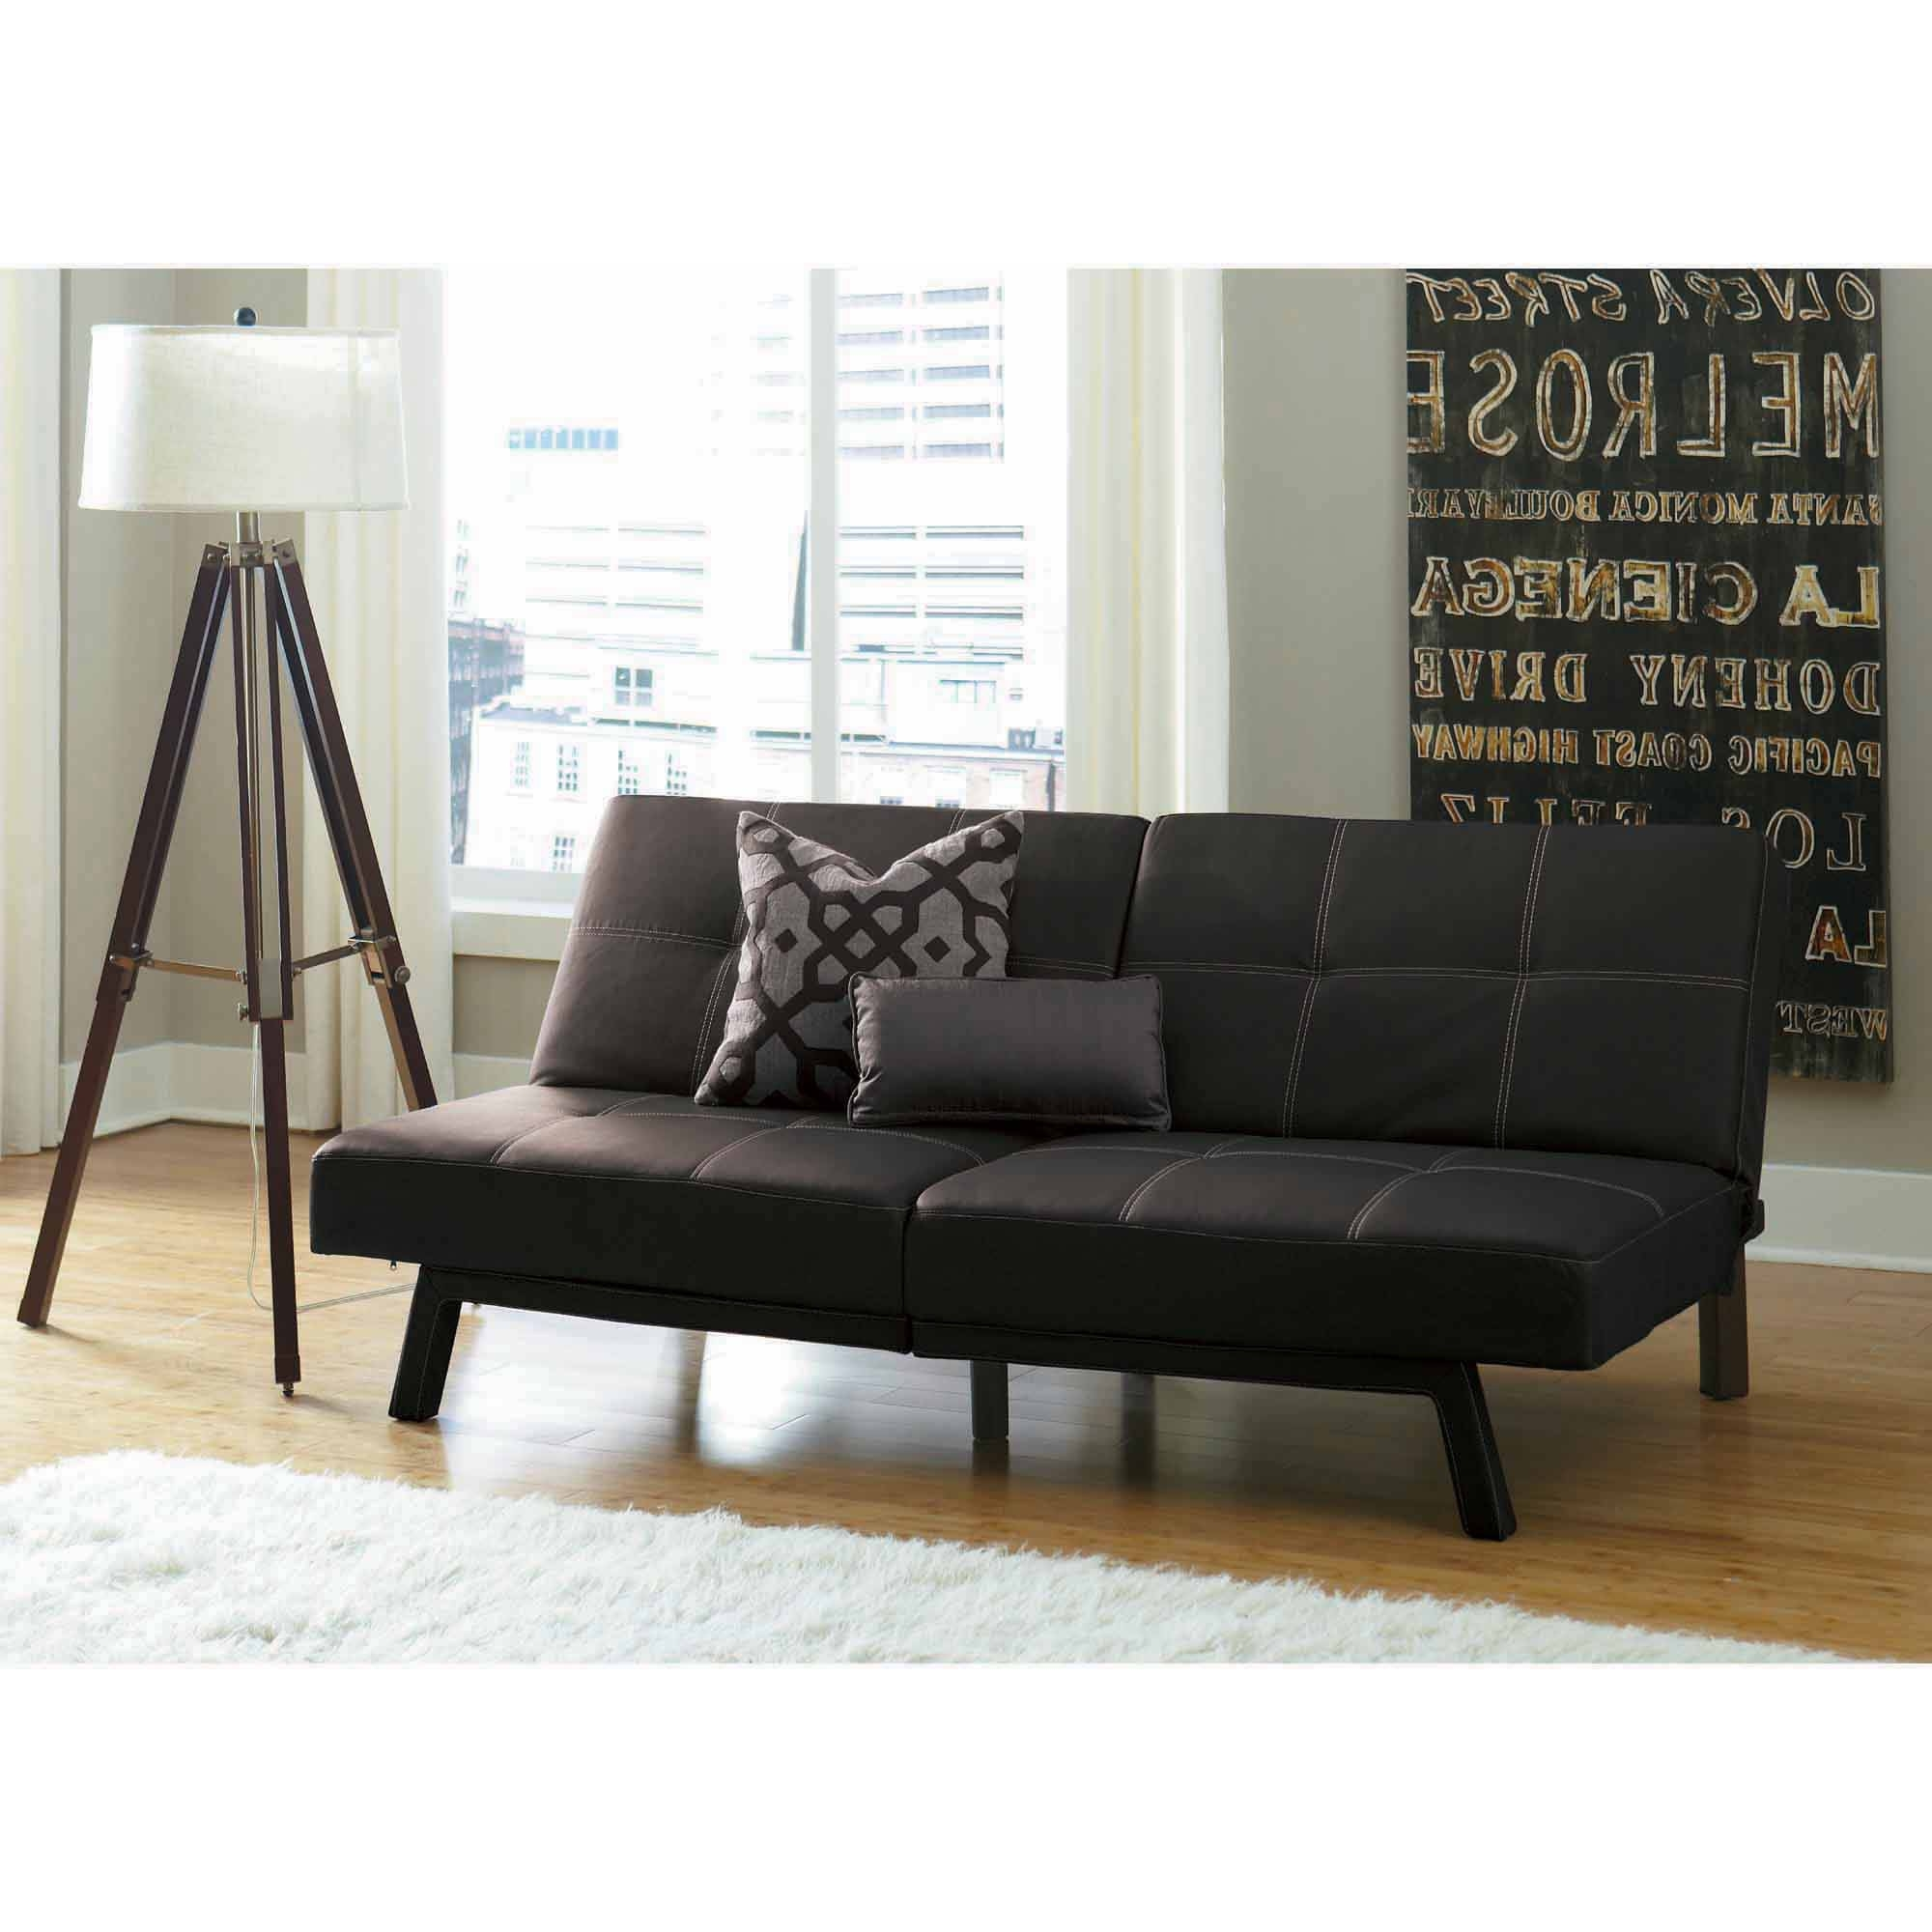 Sofas Sectionals Stylish Big Lots Sofa Sleeper Big Lots Futon Throughout Big Lots Sofa Bed (#12 of 12)